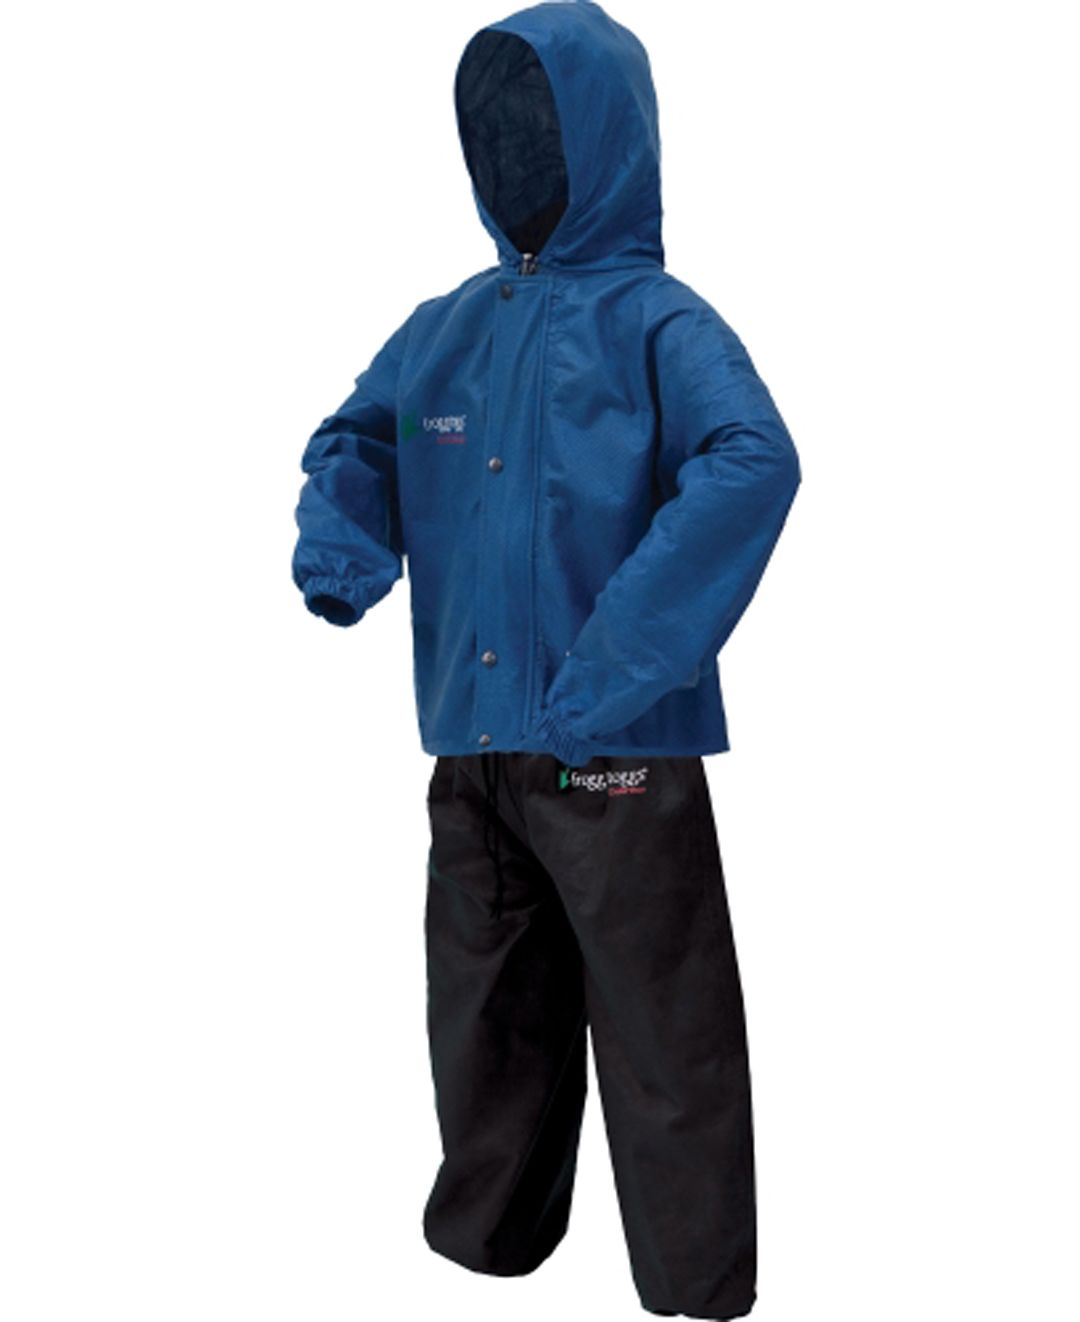 d0e6db849 frogg toggs Youth Classic Polly Wogg Rain Suit